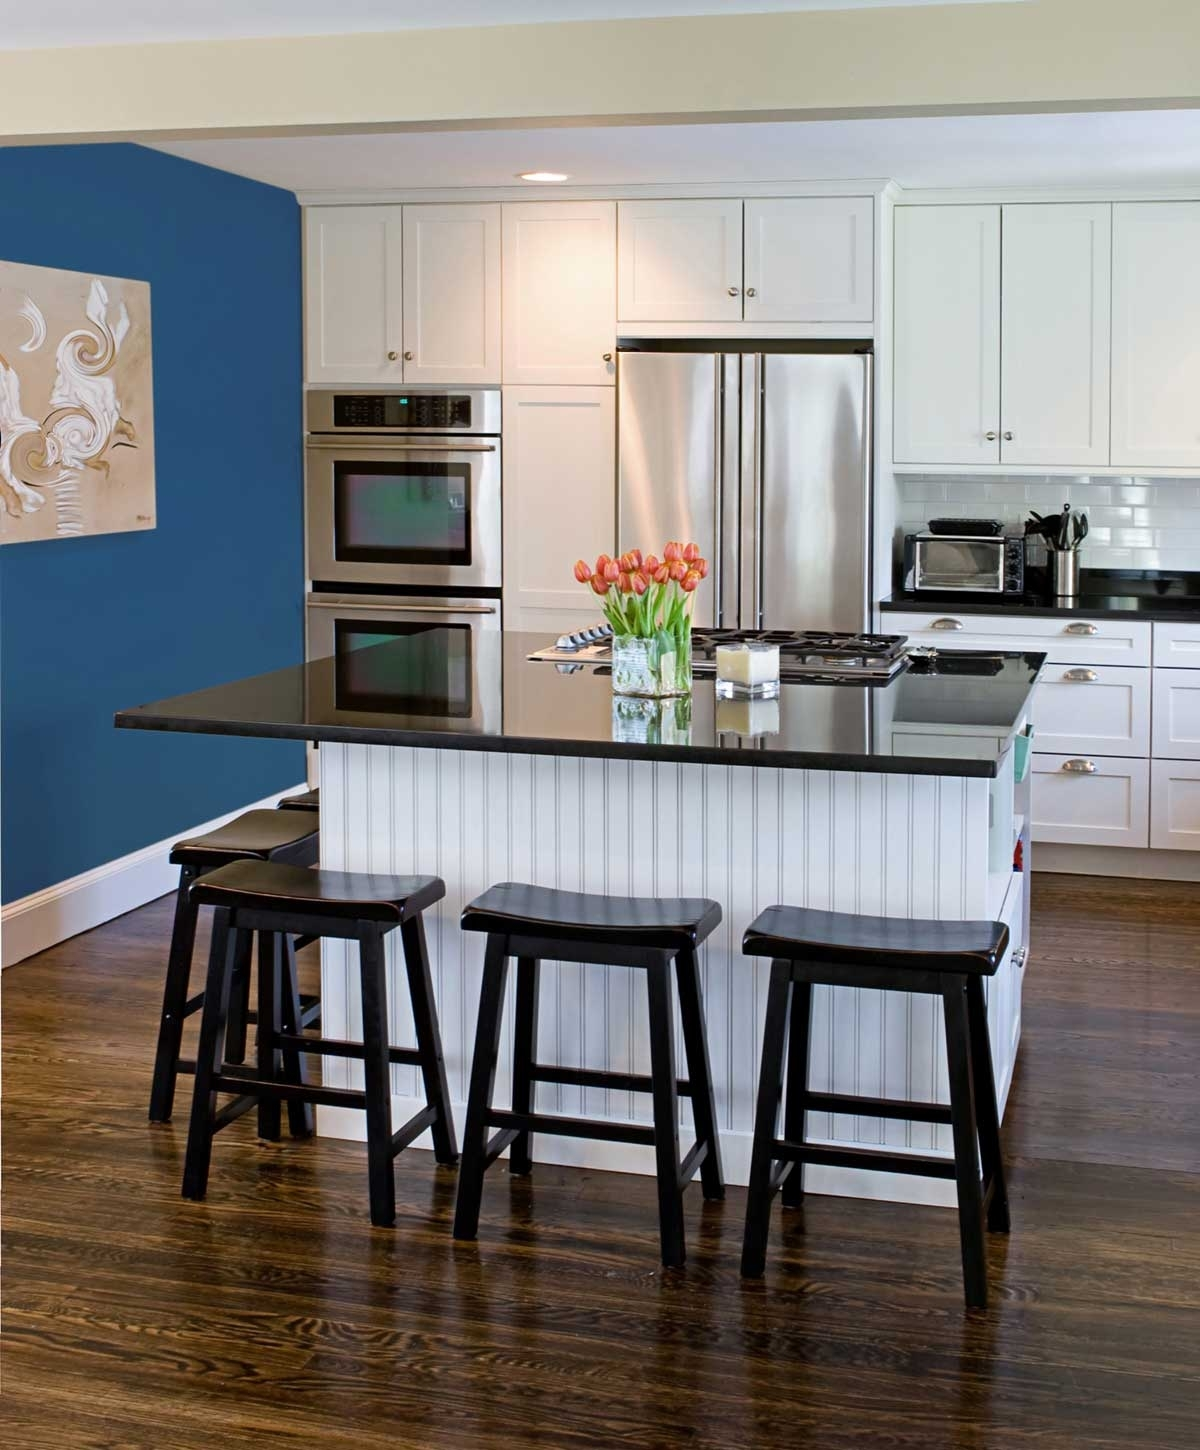 Wonderful Orange Accents Kitchen Design With Blue Wall (View 13 of 15)